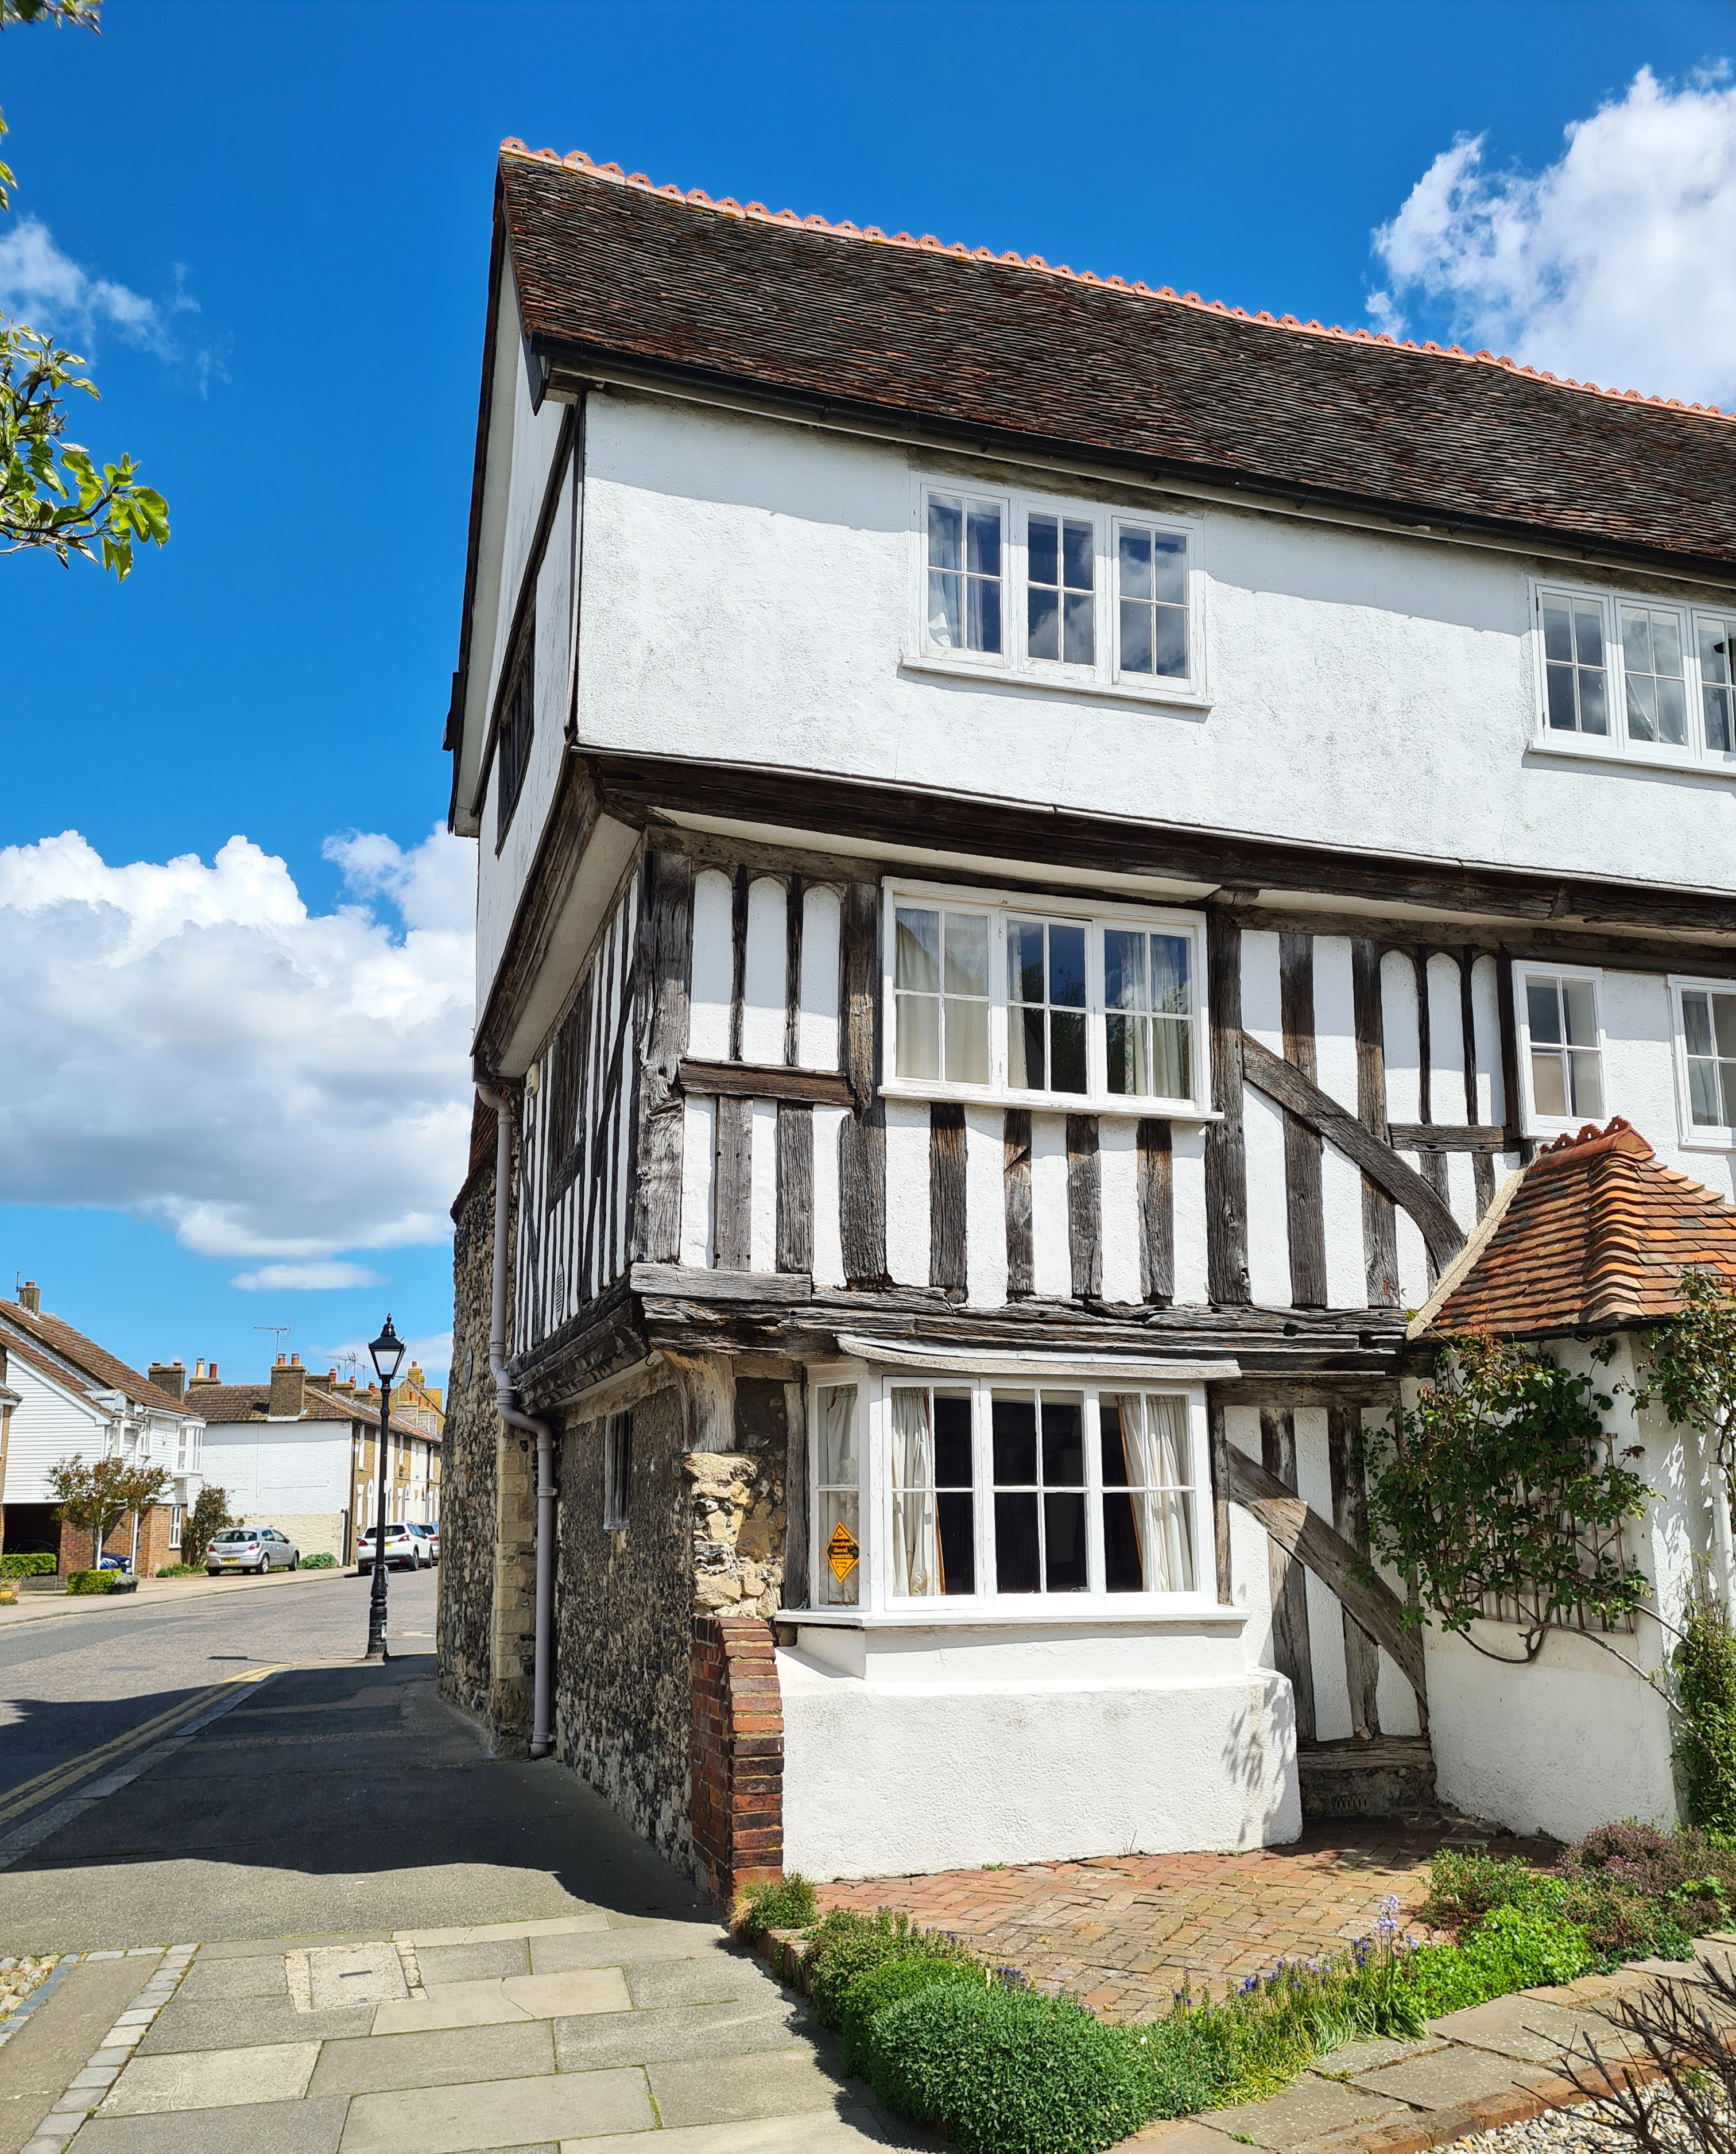 Abbey Street has altered considerably over the centuries. Arden's House incorporates part of the outer gateway to the long gone Abbey. Cardinal Wolsey stayed here when it acted as the town's guest house for prominent visitors